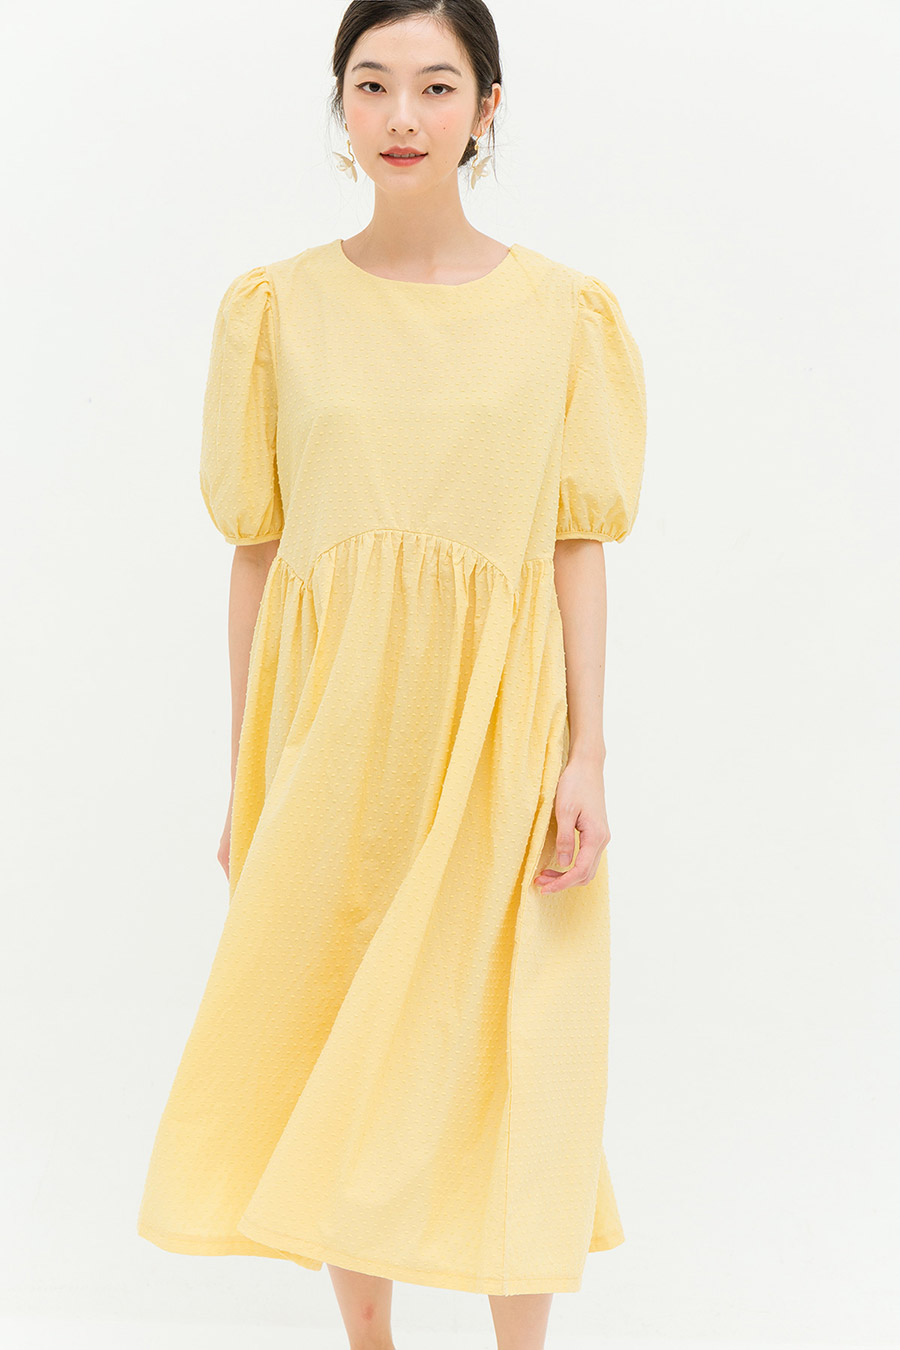 *BO* PHILIPPA DRESS - BUTTER